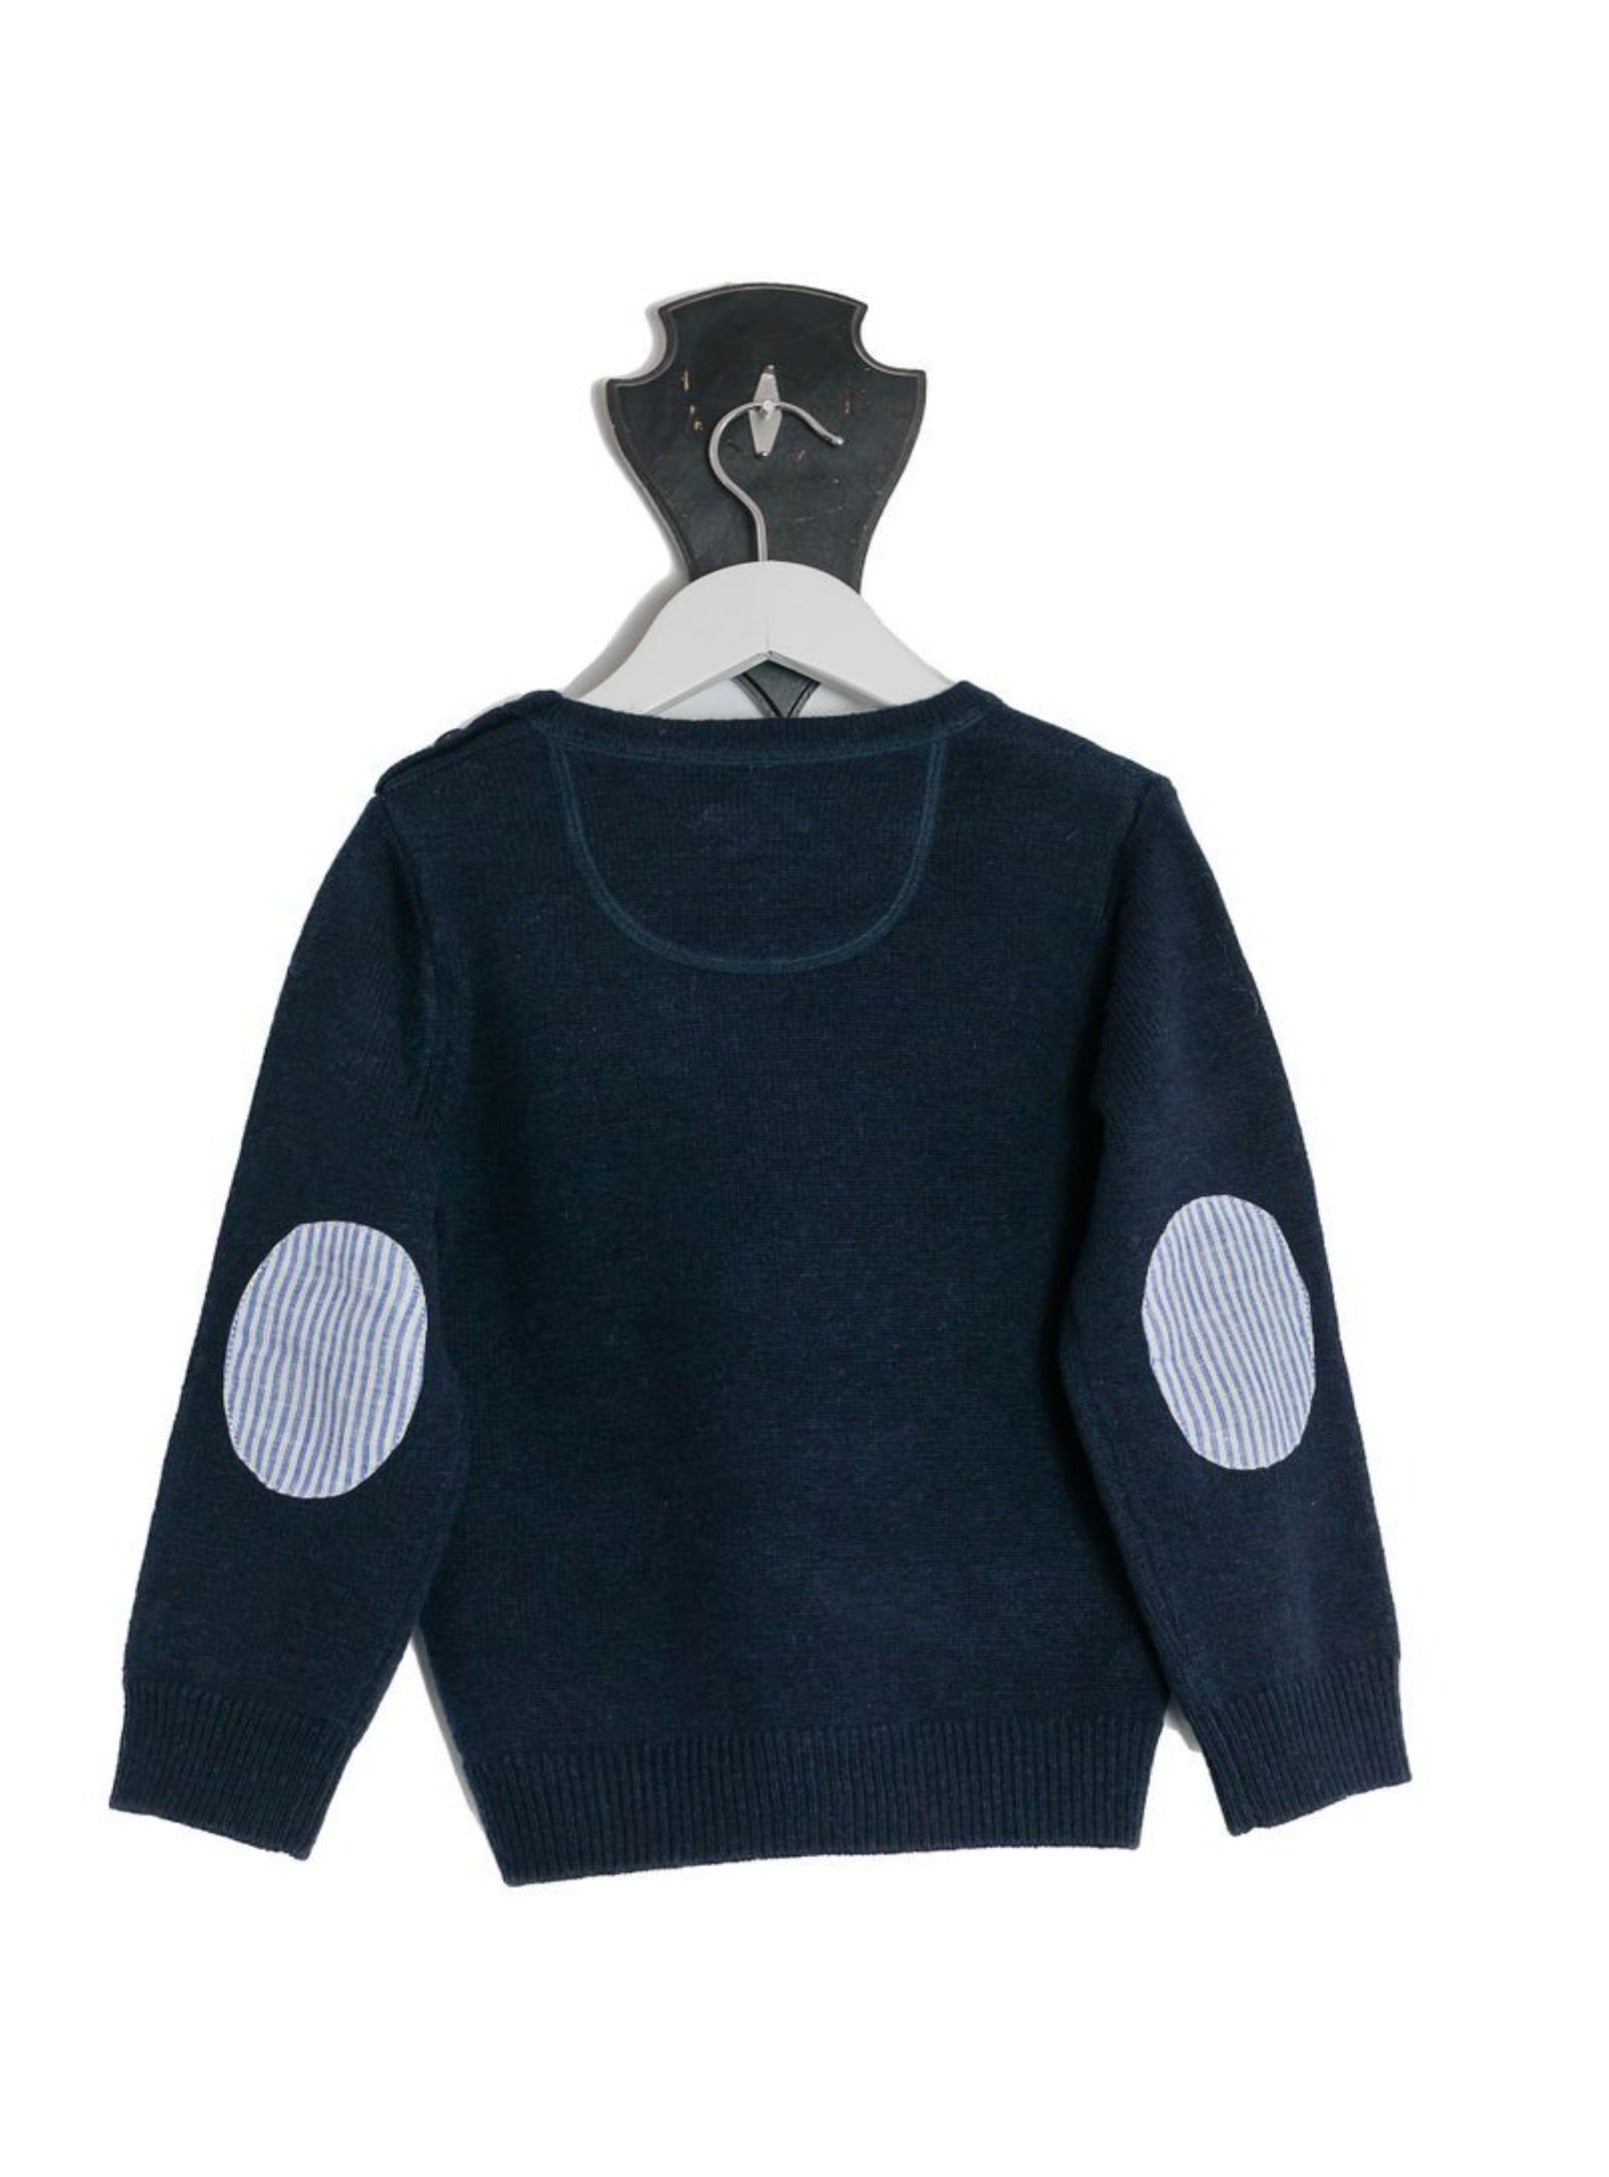 Navy Freddie Crew Neck Jumper with Blue and White Stripe Patches